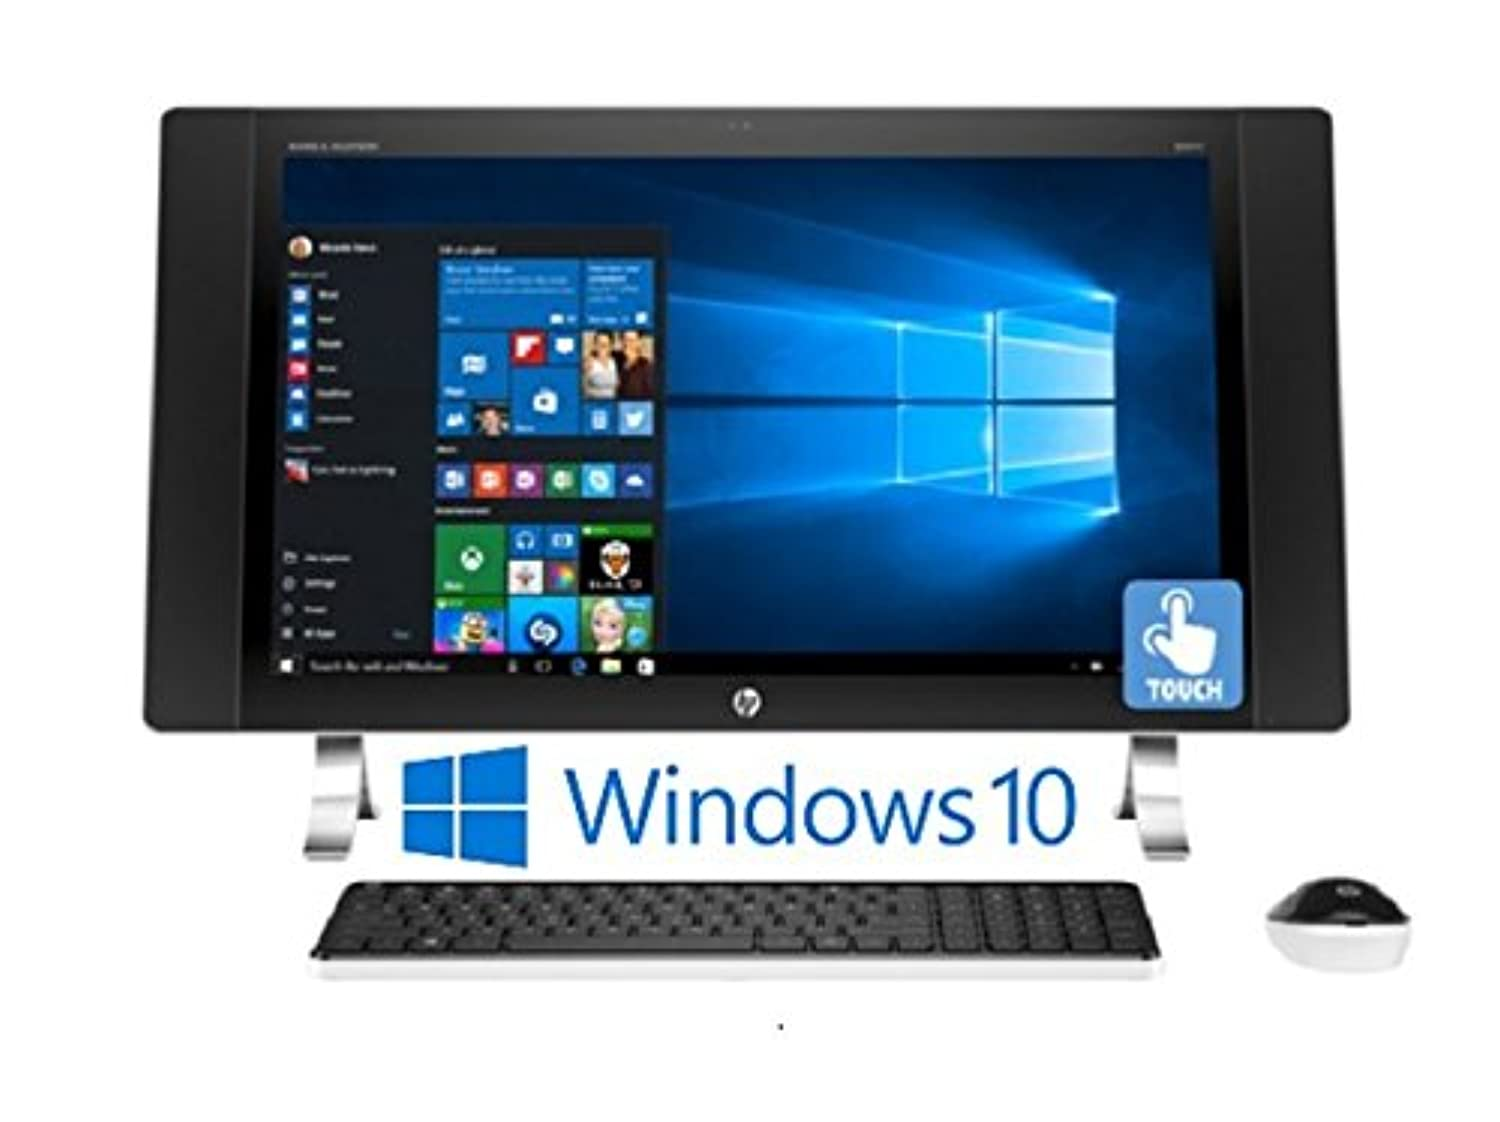 HP ENVY 27-p014, 27? IPS Full HD (1920 x 1080) Touchscreen, Intel Core i5-6400T, 12GB, Windows 10 All-in-One Desktop PC (Renewed)